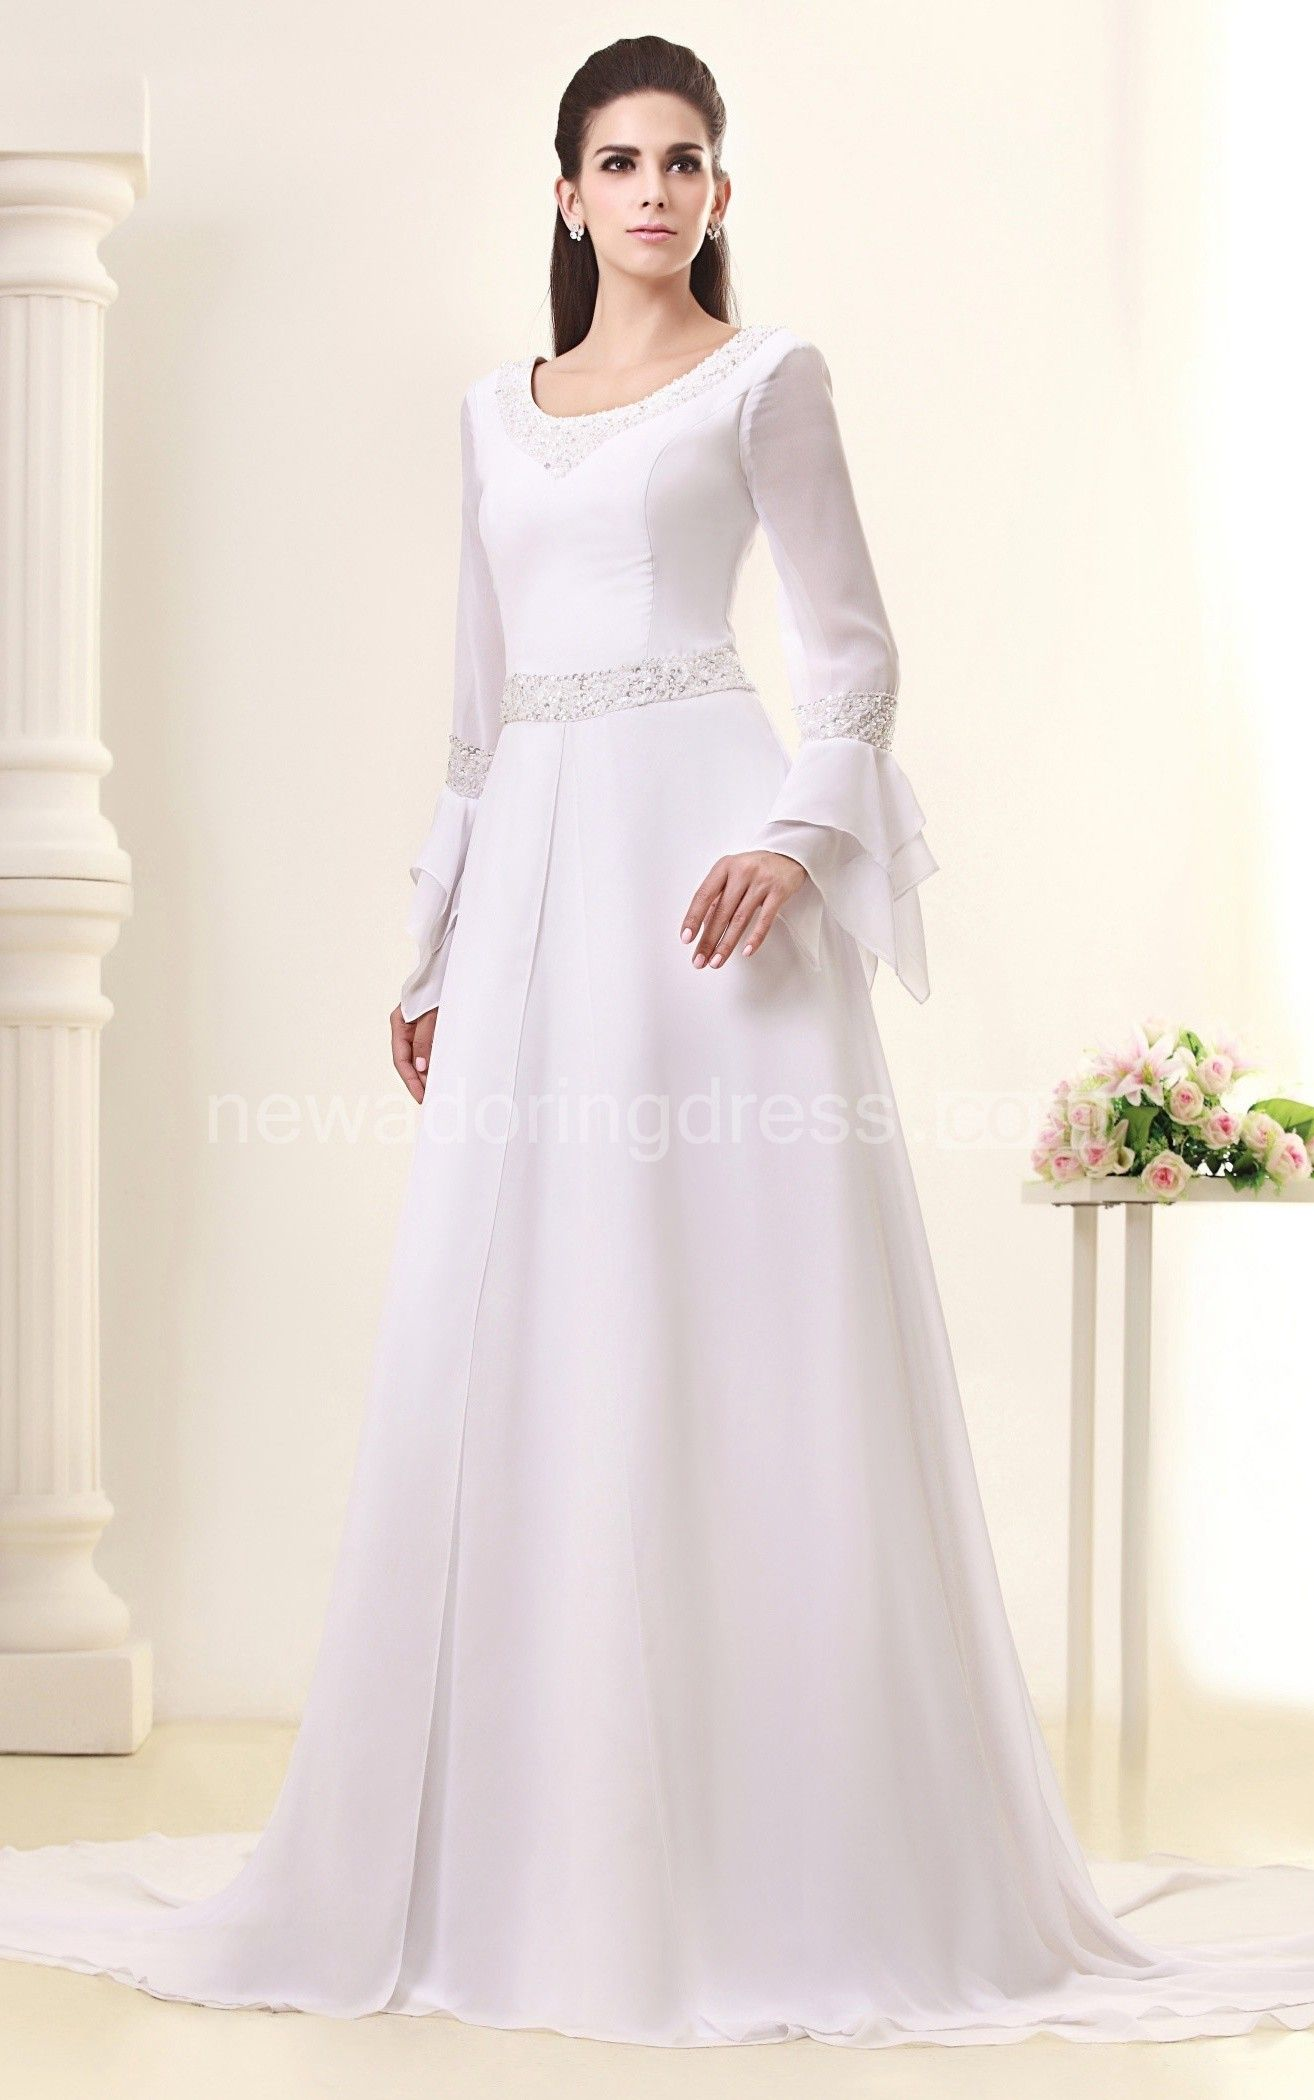 Elegant longsleeve maxi dress with crystal detailing and court